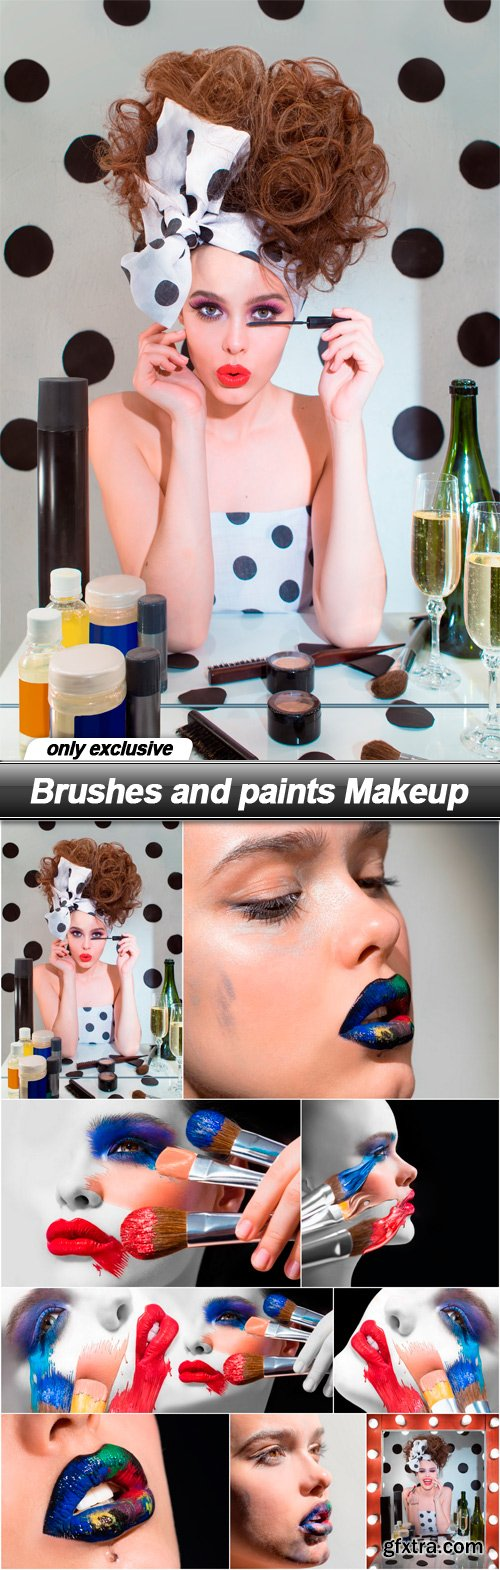 Brushes and paints Makeup - 9 UHQ JPEG